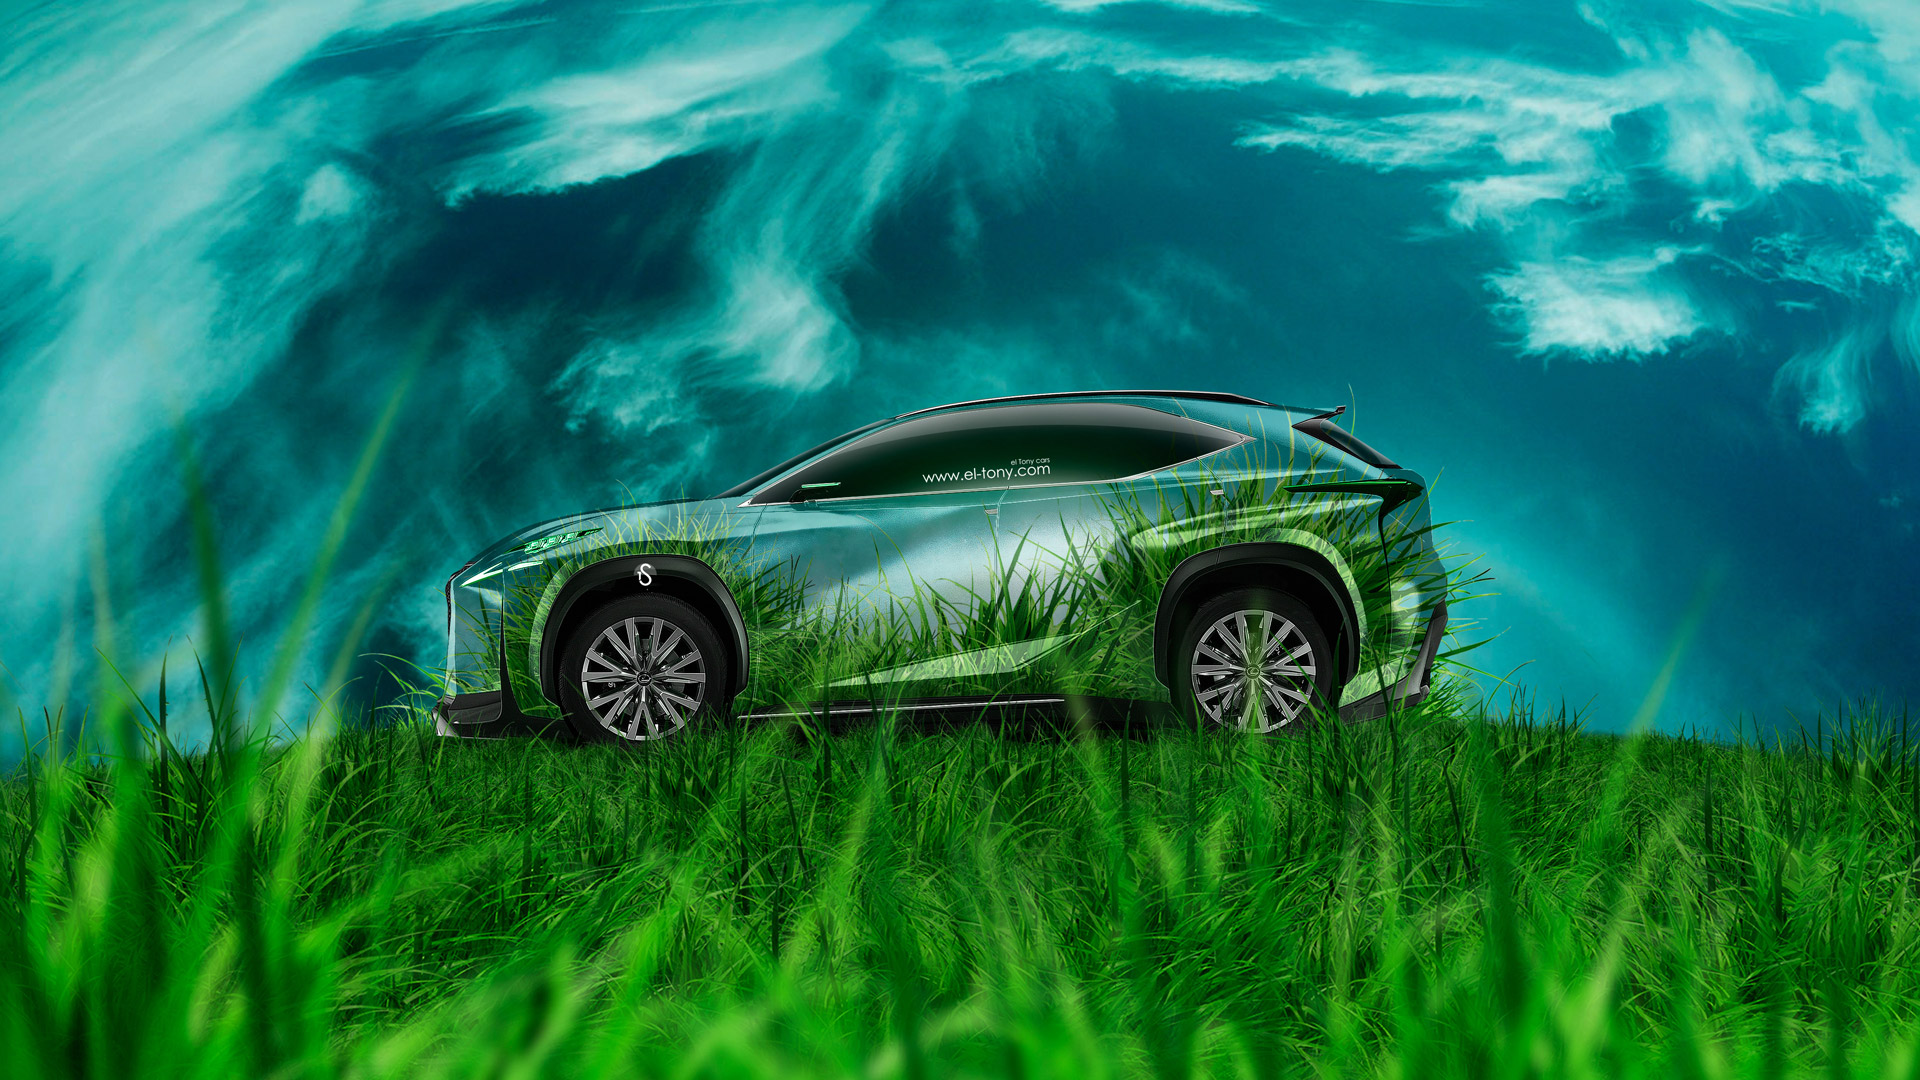 Lexus-LF-NX-Side-Grass-Style-Crystal-Nature-Car-2014-HD-Wallpapers-design-by-Tony-Kokhan-[www.el-tony.com]